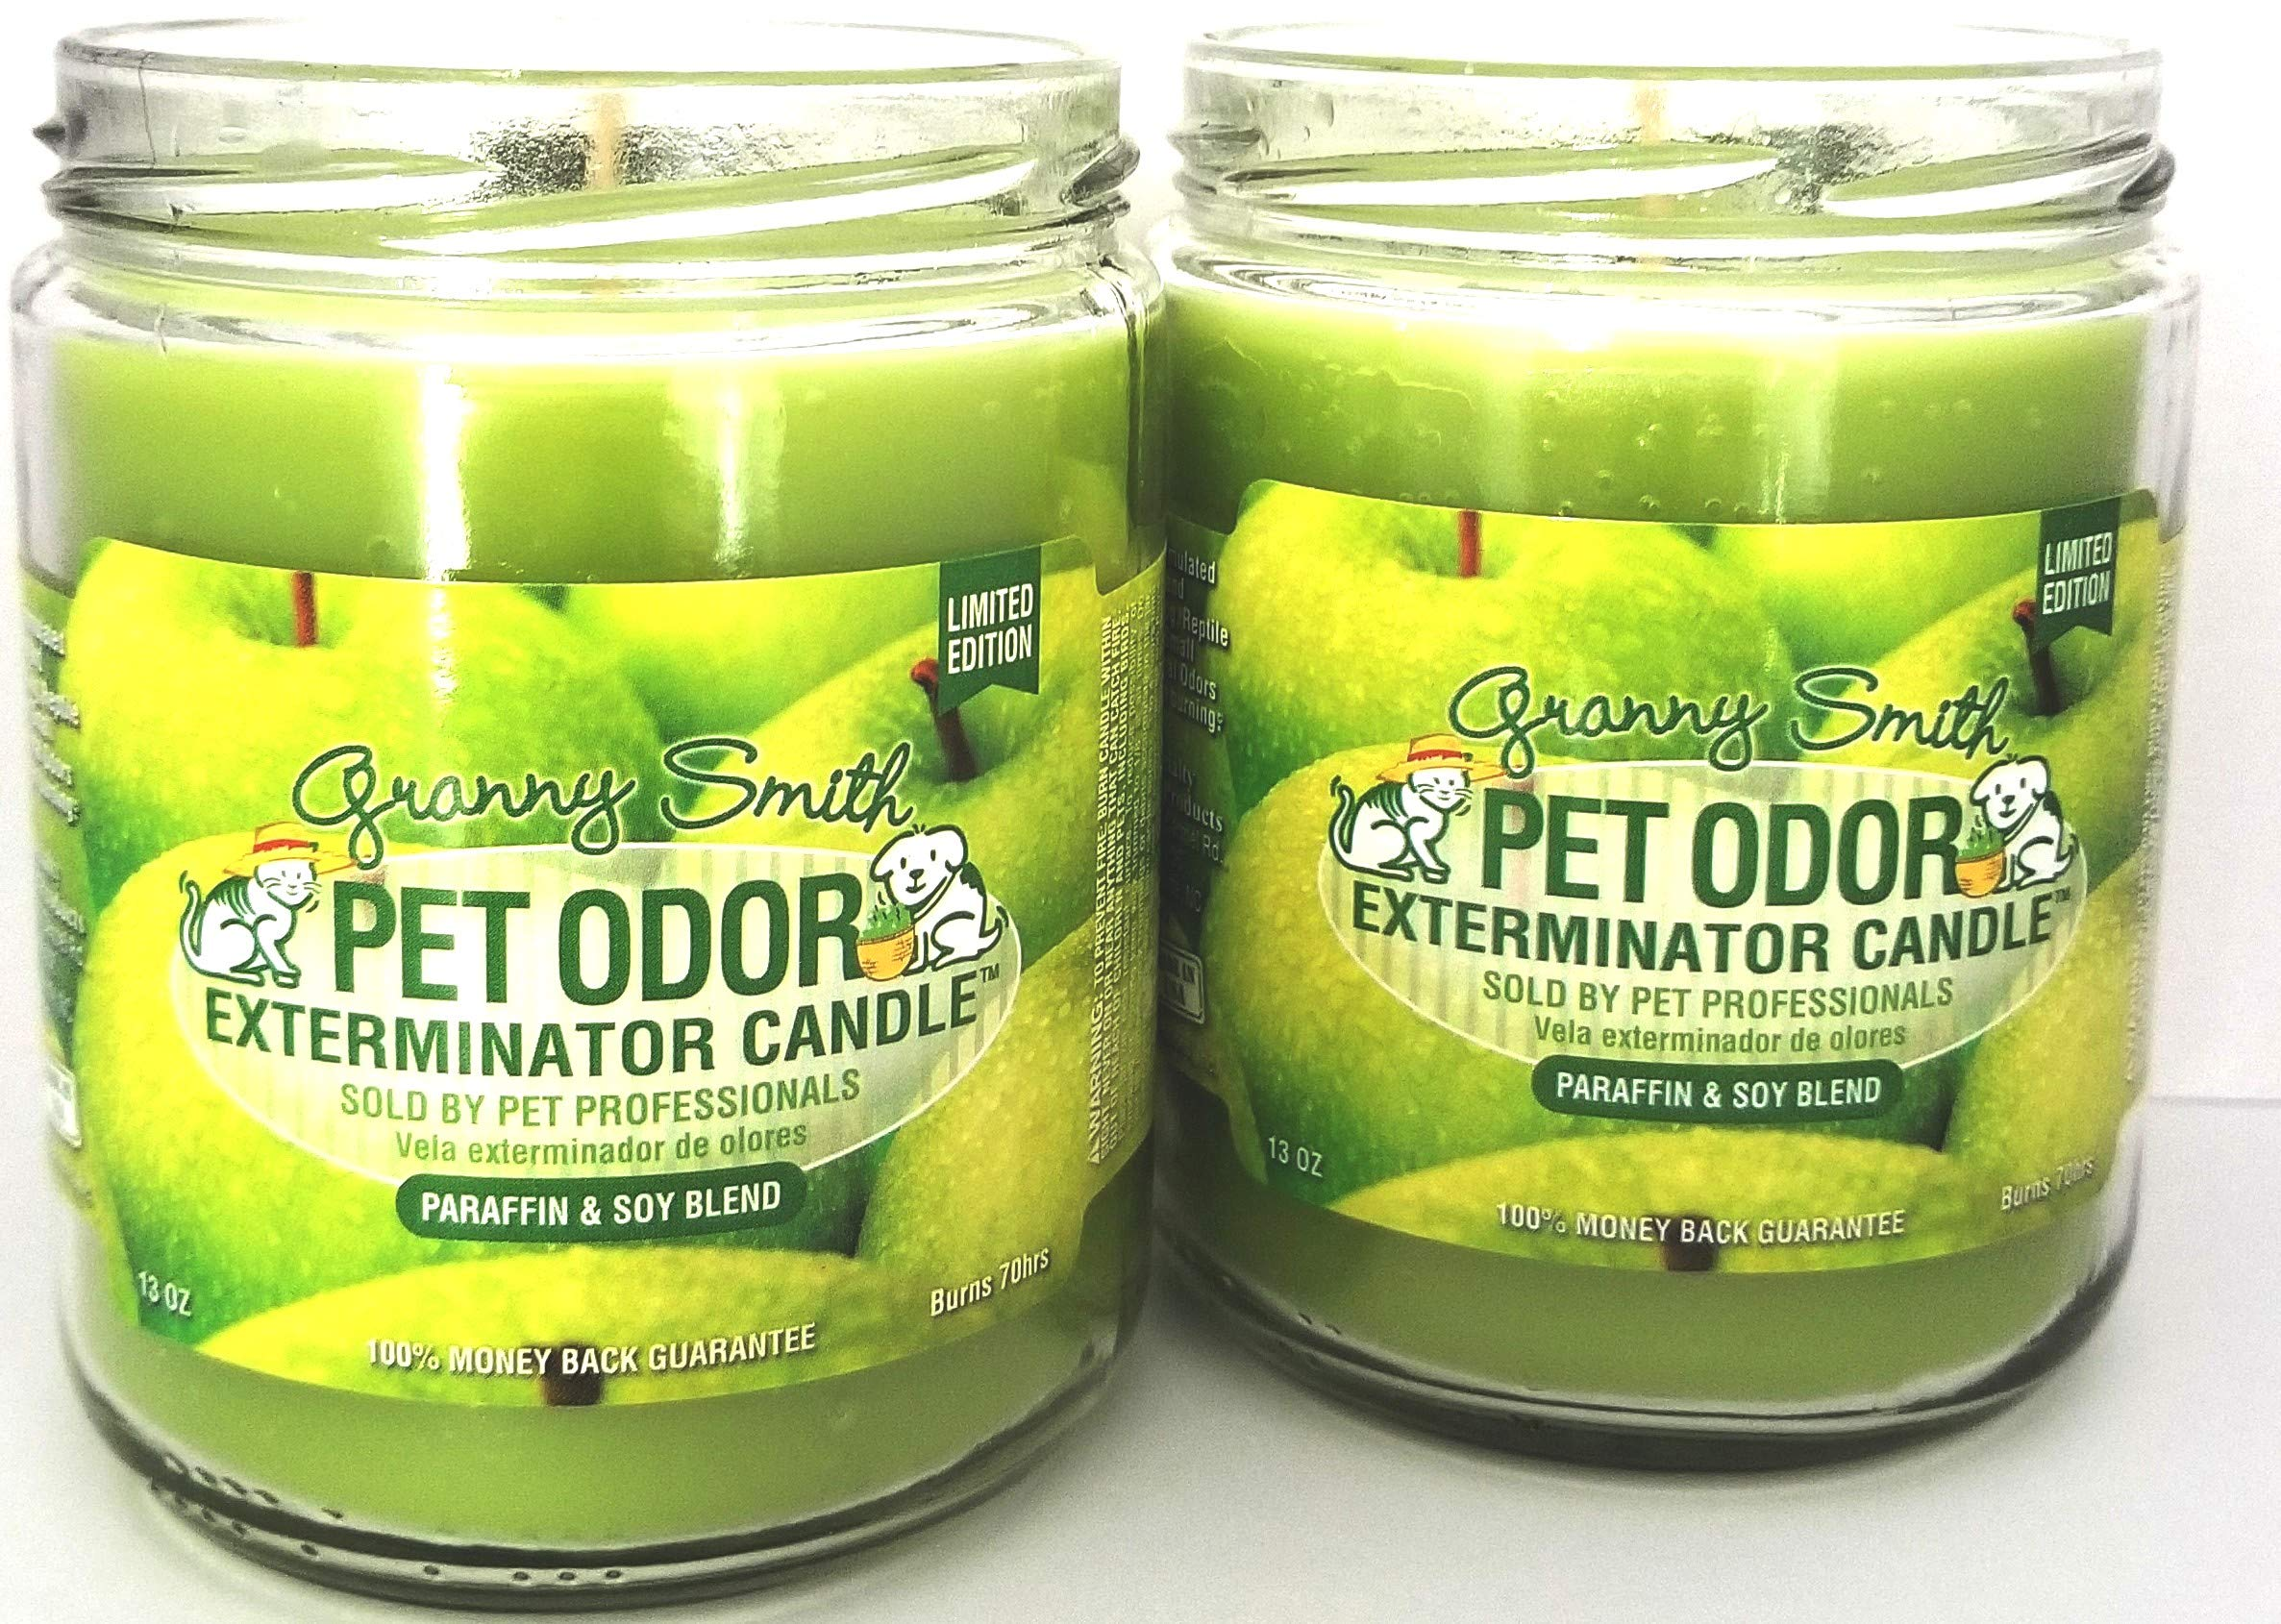 Specialty Pet Products Pet Odor Exterminator Candle, Granny Smith - Pack of 2